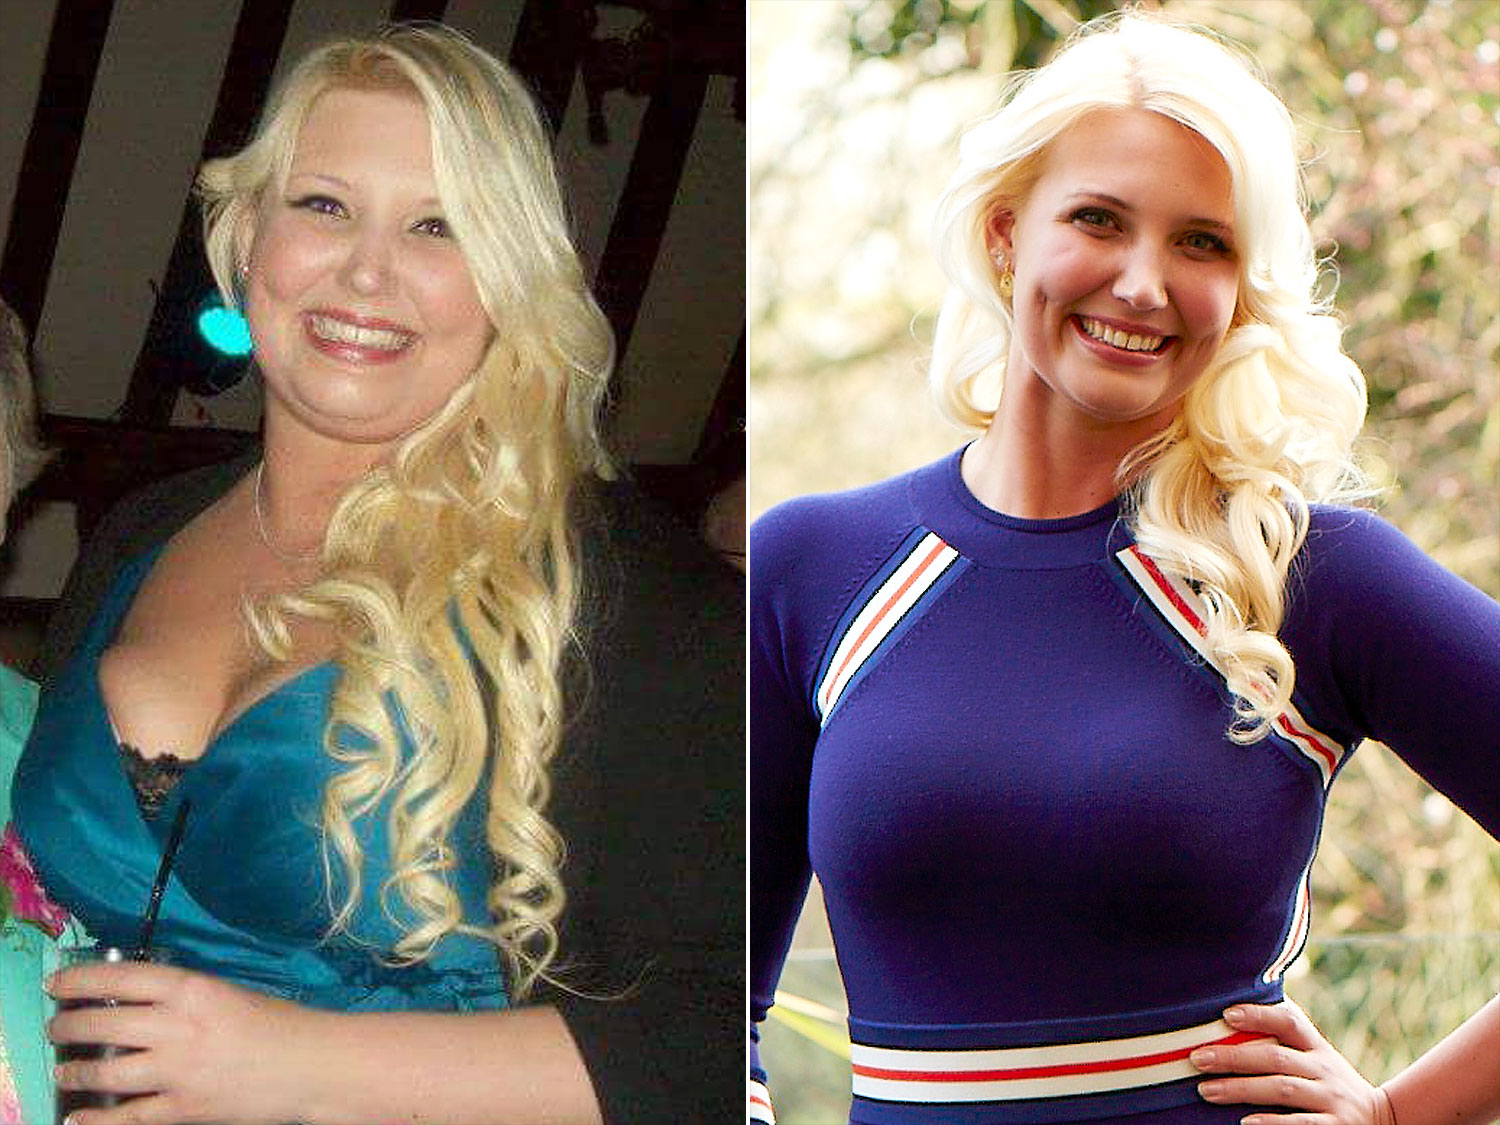 Formerly Overweight Nurse Loses Over 70 Lbs.: 'I Didn't Want to Be a Contradiction to My Patients'